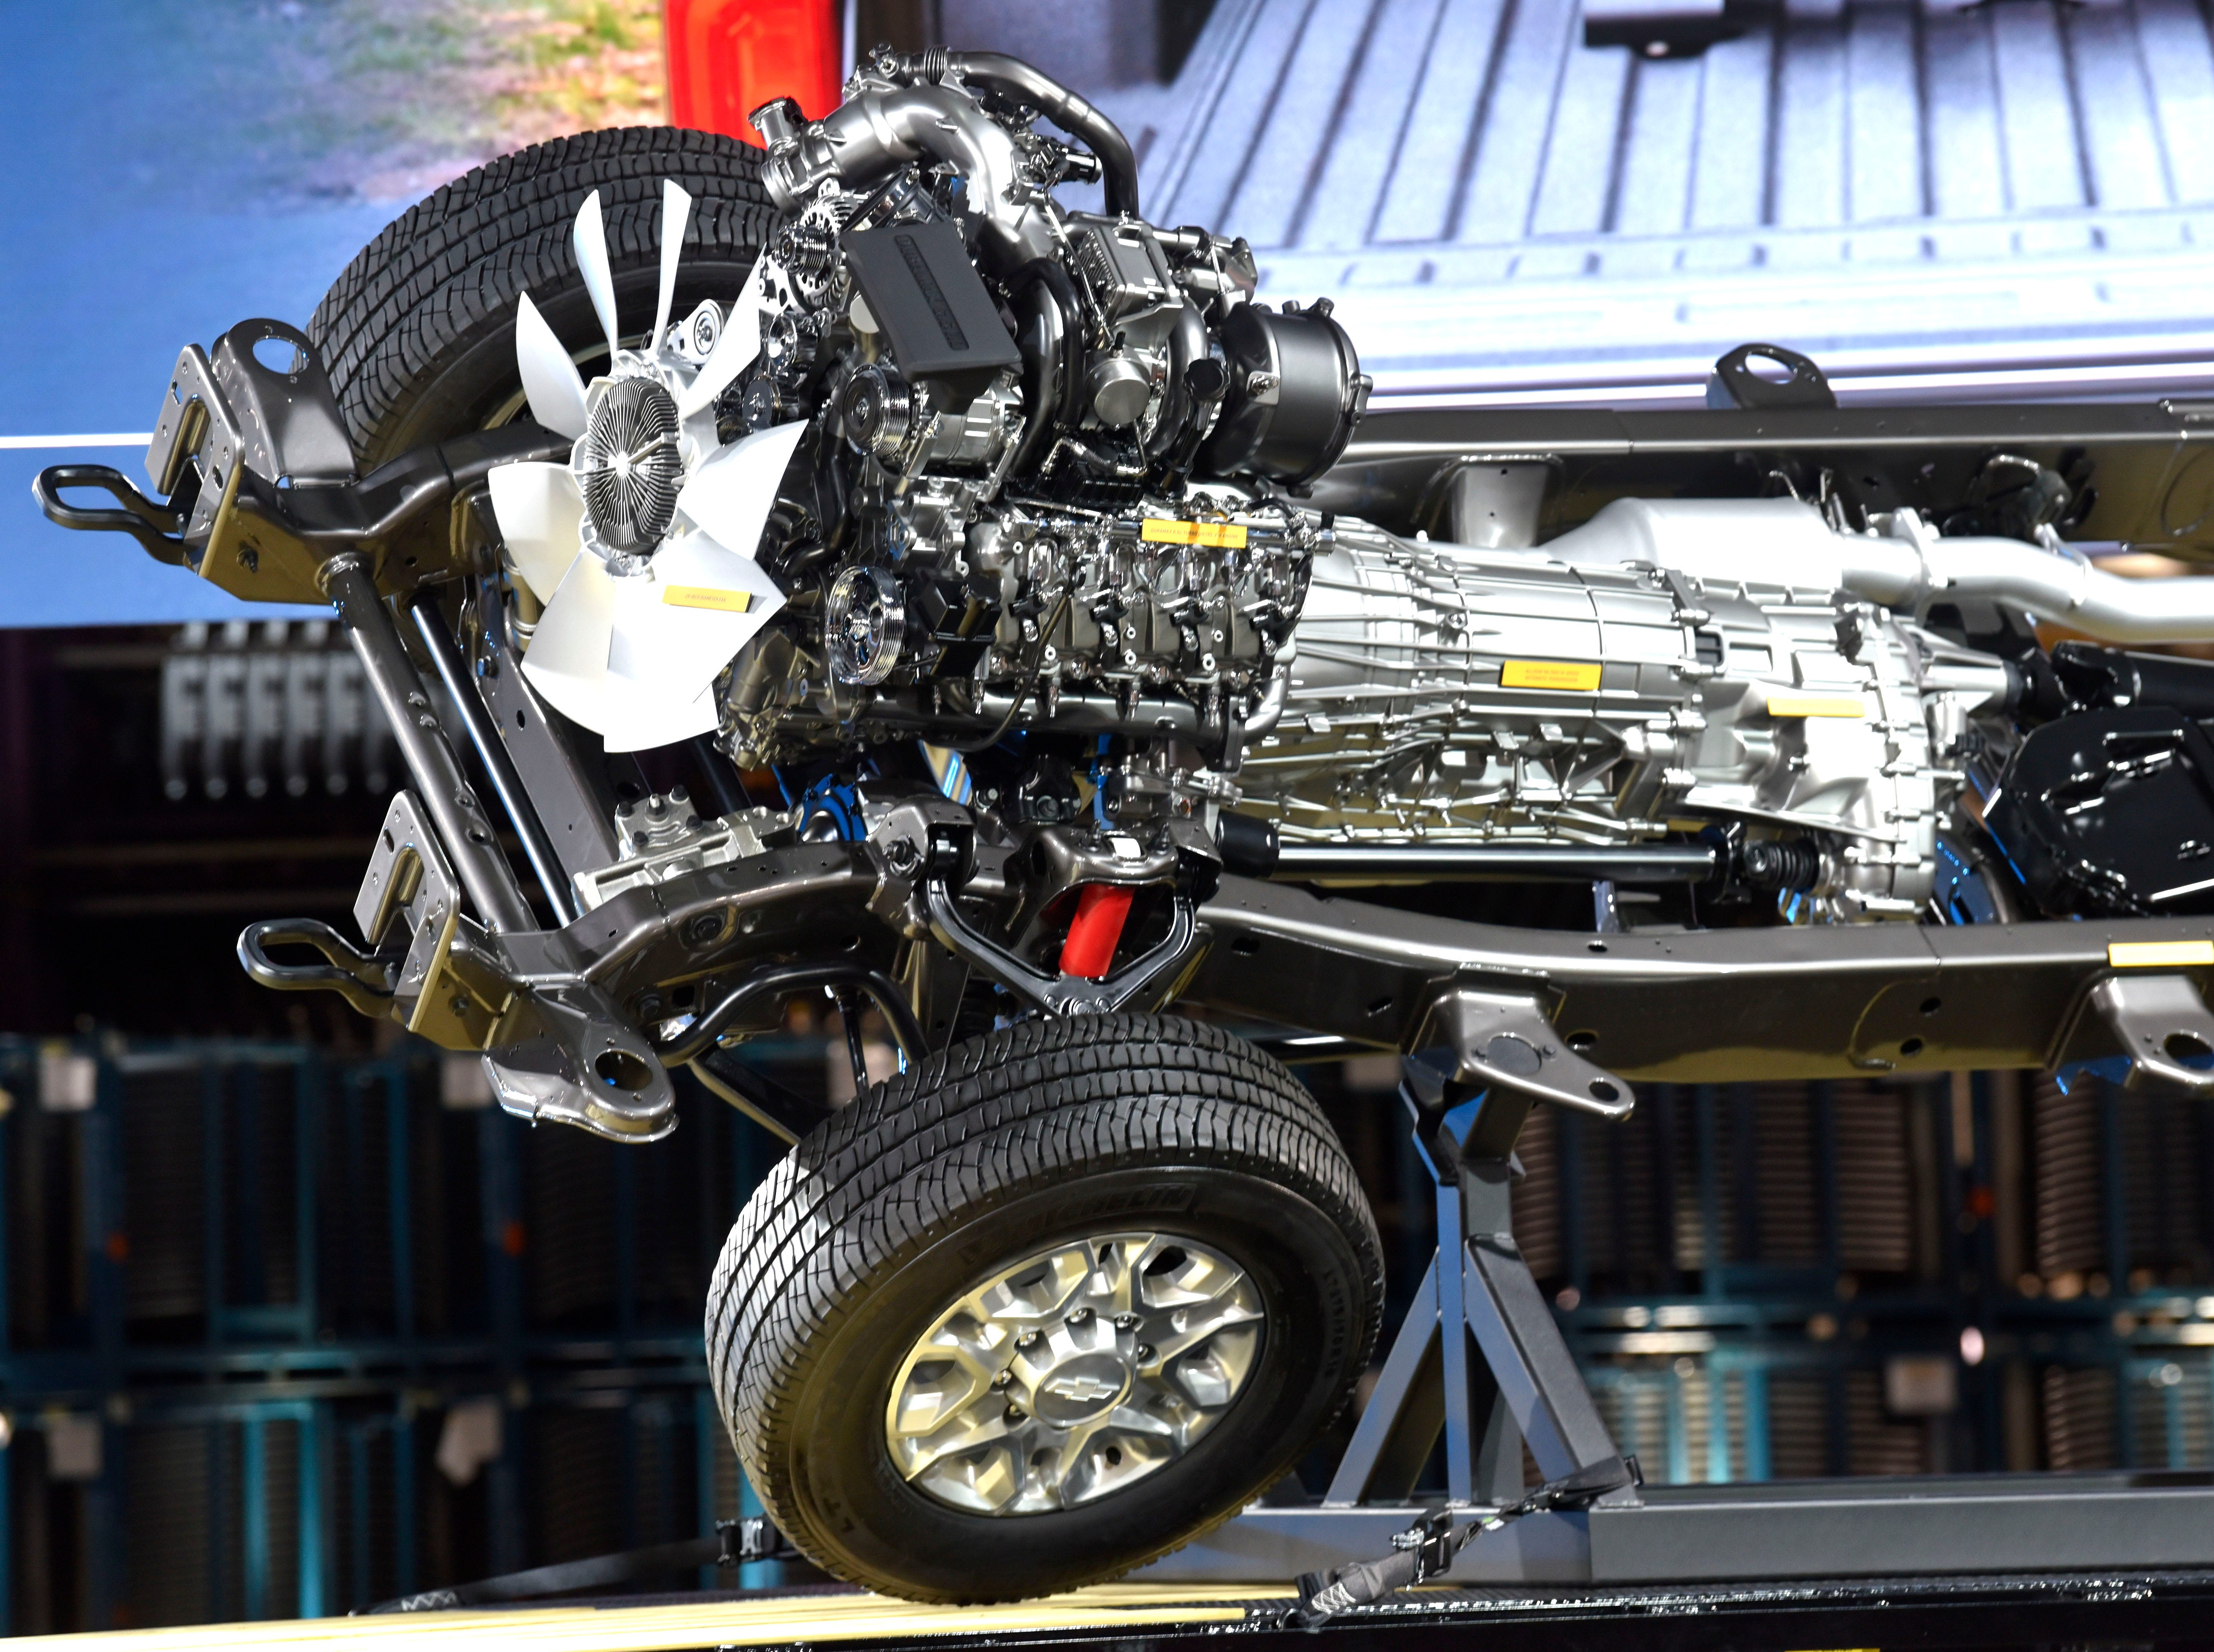 Seen on a rolling chassis, the all-new 6.6-liter gas-powered V-8 Duramax turbo-diesel engine is paired with a 10-speed Allison transmission. The new Silverado Heavy Duty will develop 445 horsepower and 910 pounds-feet of torque.